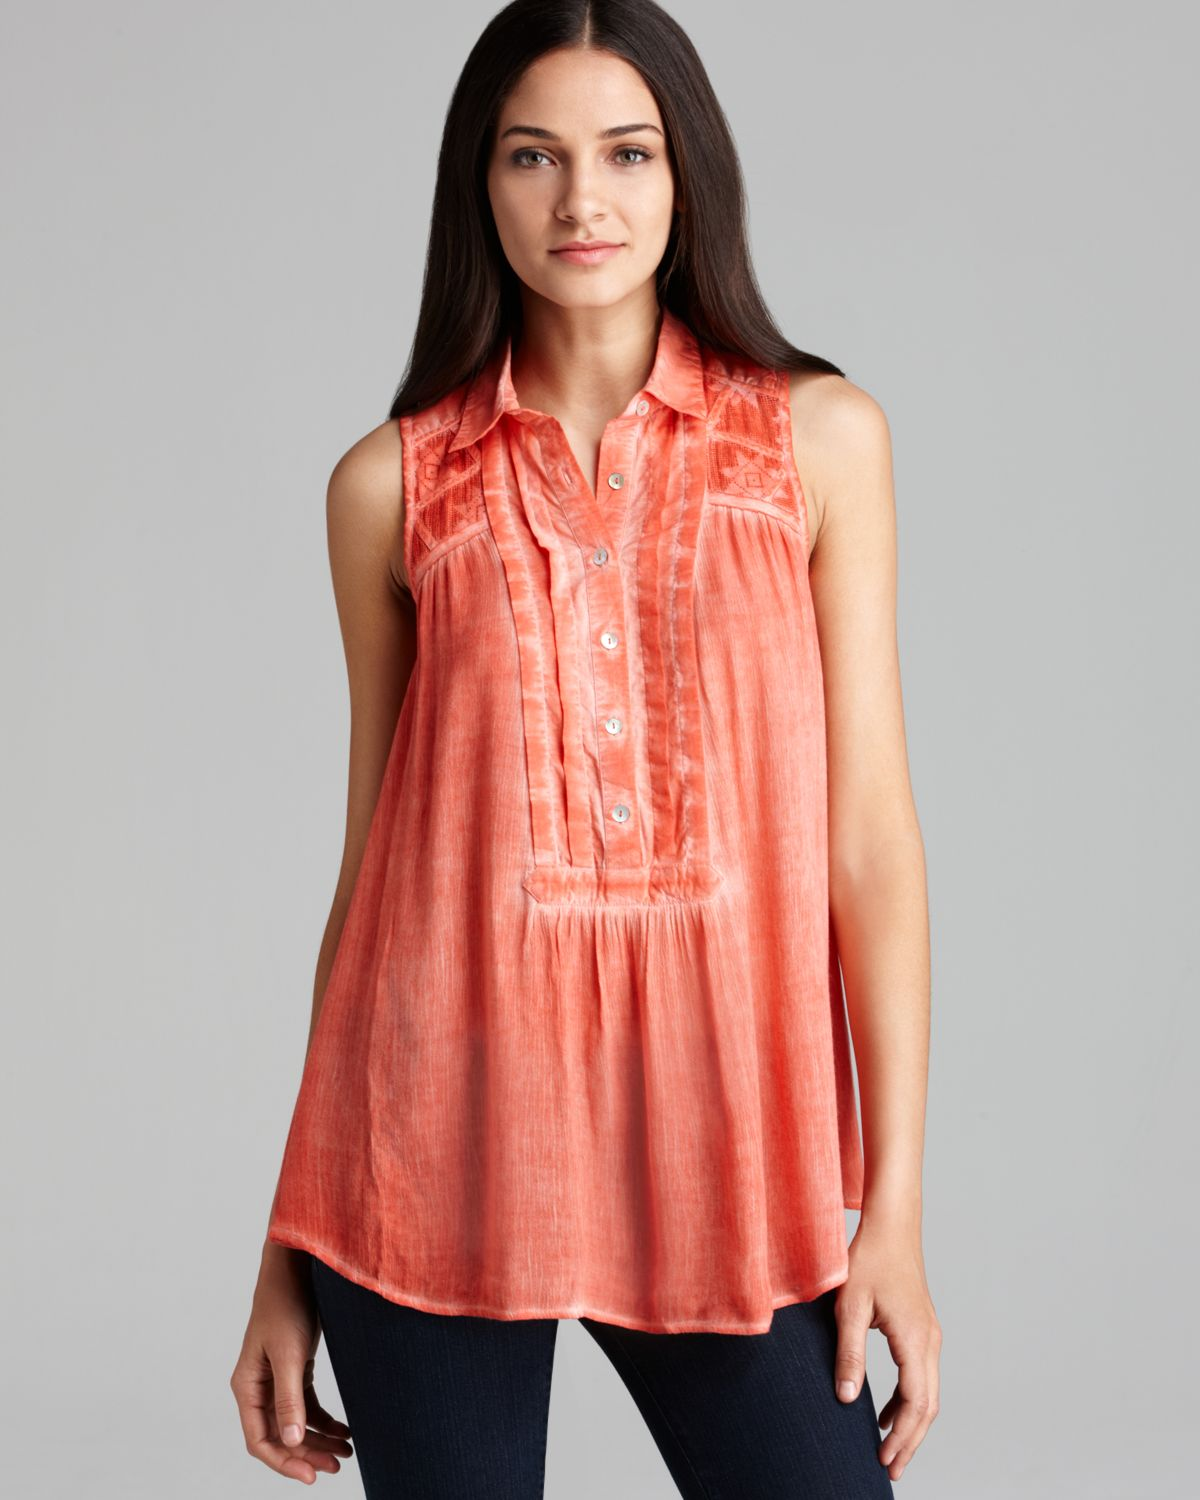 4df6cae5 Gallery. Previously sold at: Bloomingdale's · Women's Free People Tunic